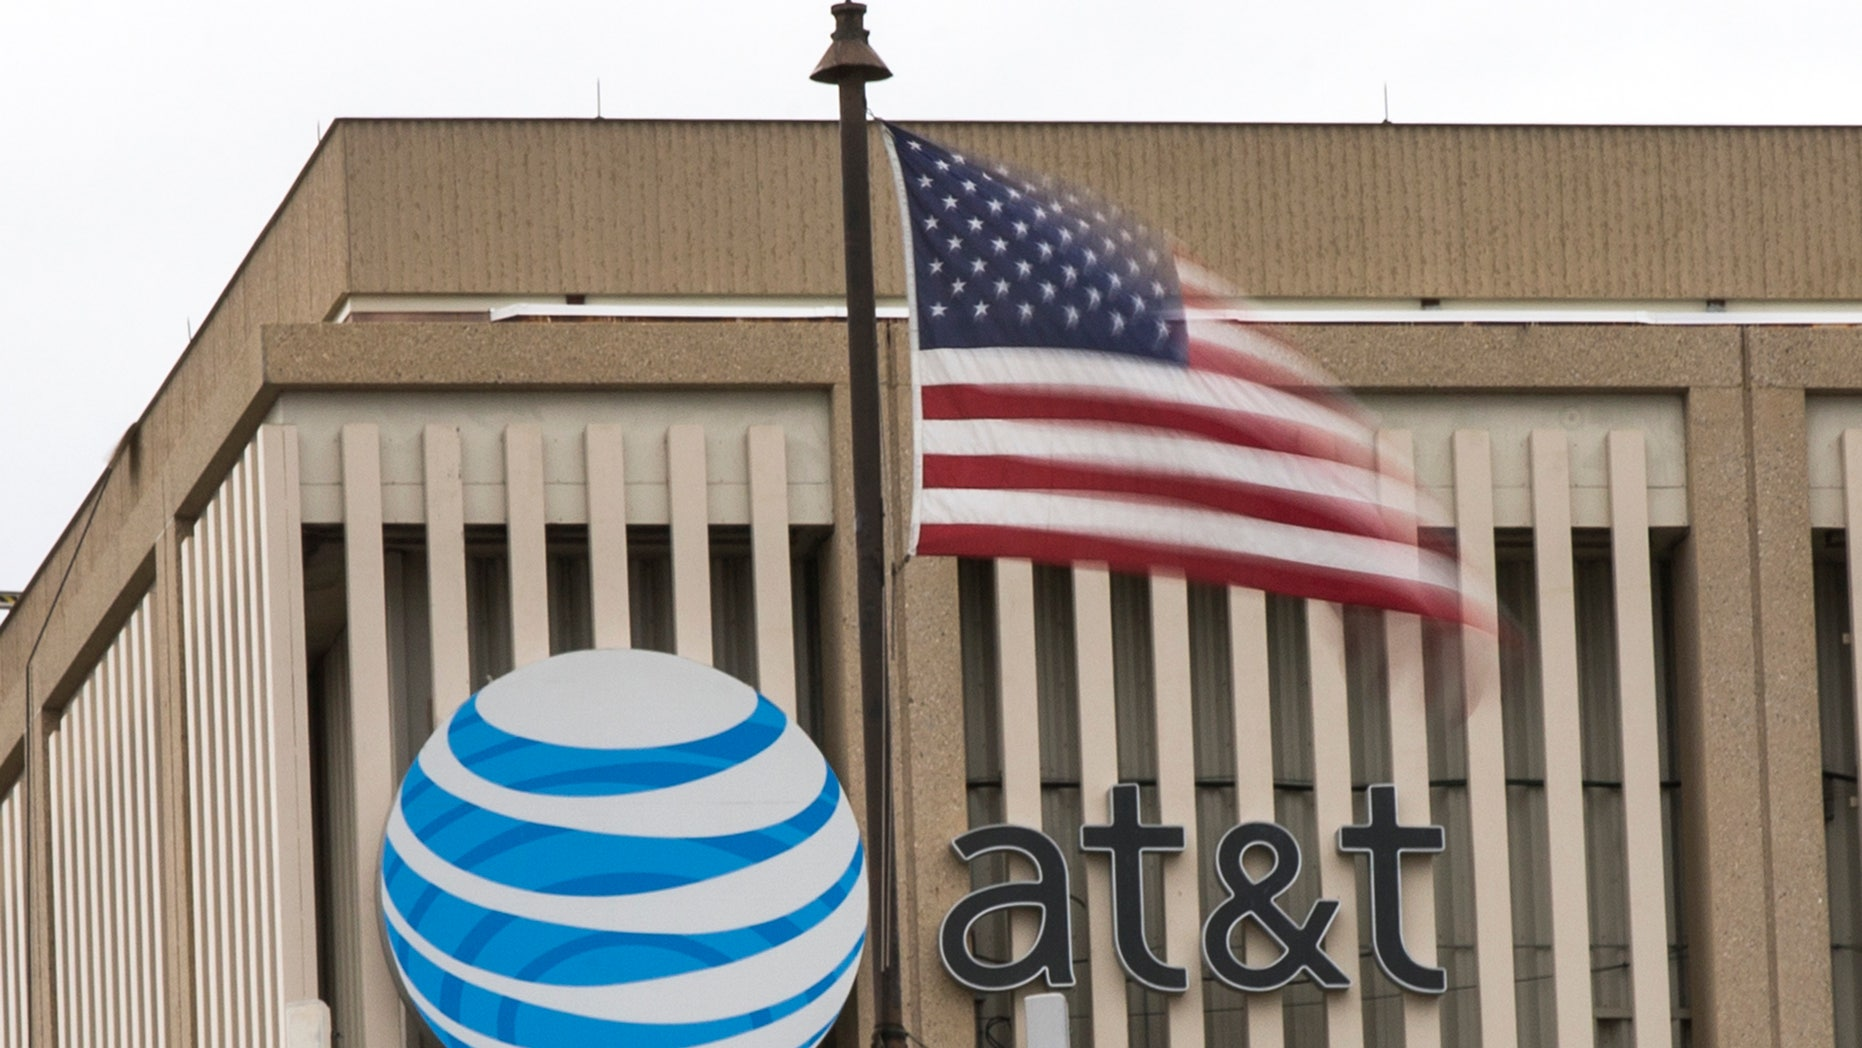 File photo - An AT&T Logo is pictured as a U.S. flag flutters in the foreground in Pasadena, Calif., Jan. 26, 2015. (REUTERS/Mario Anzuoni)